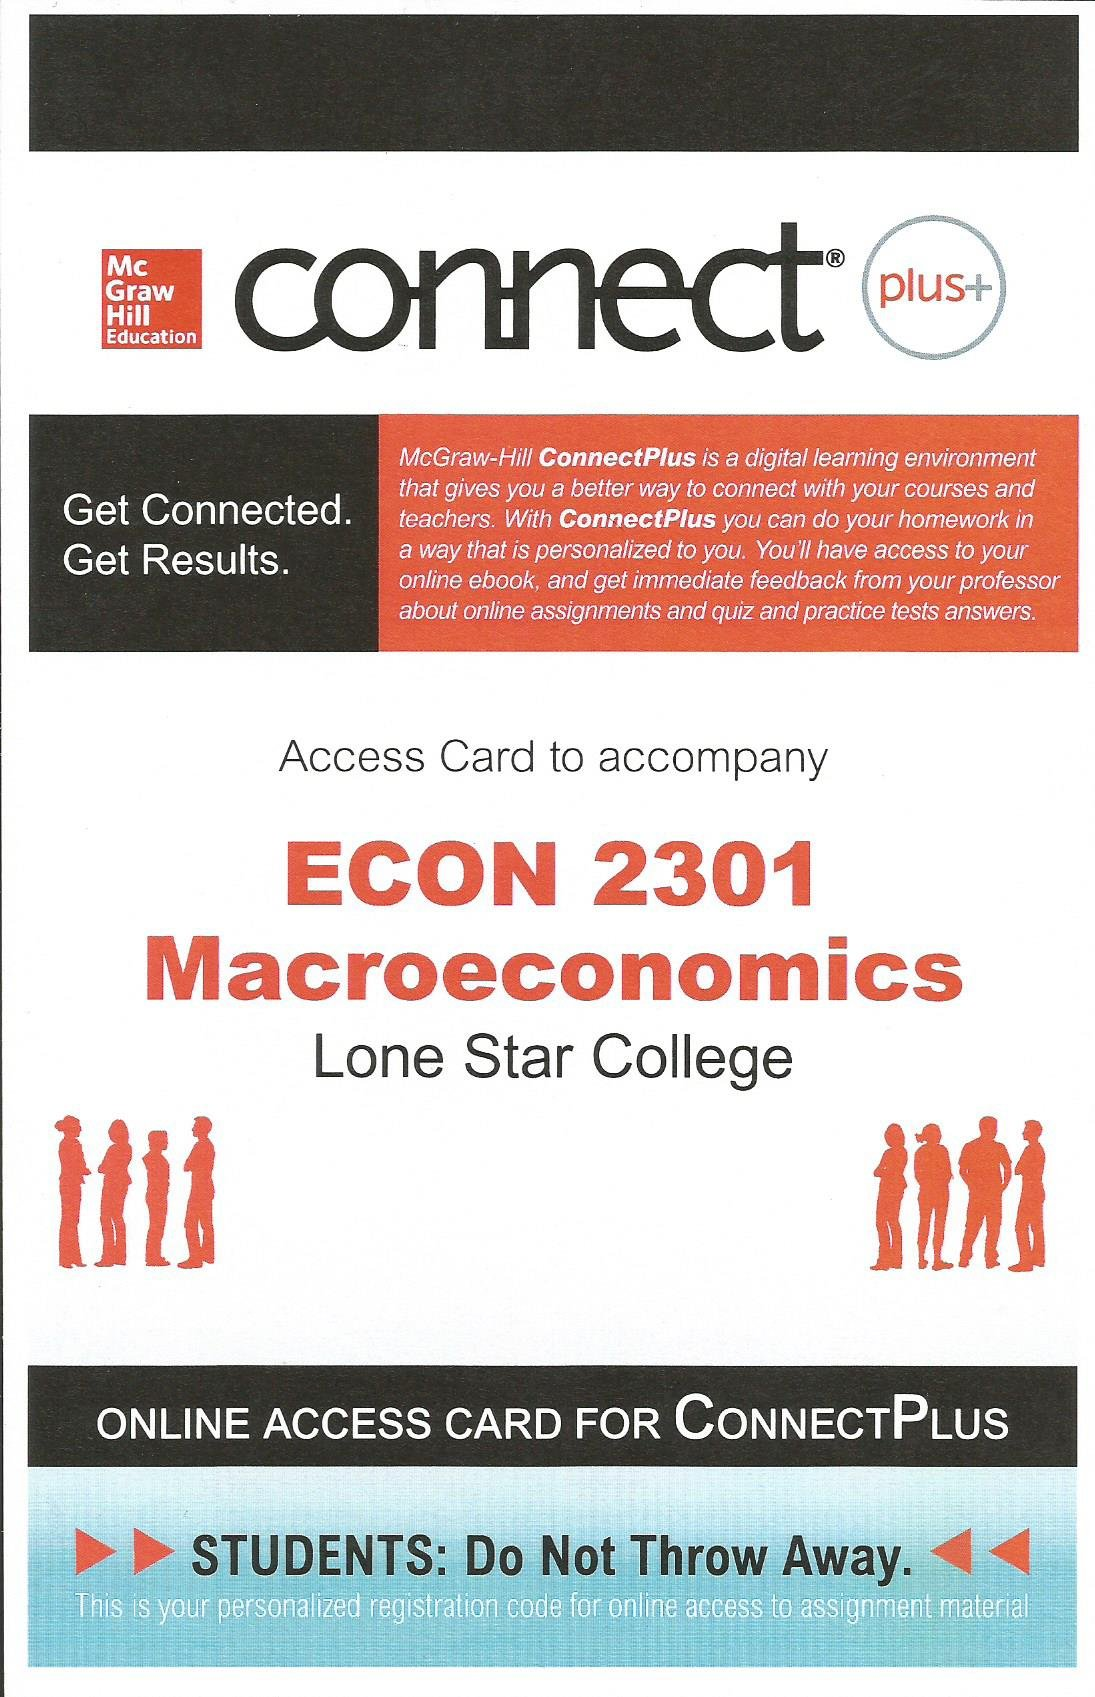 Econ 23012302 lone star college cyfair stanley l brue and sean m econ 23012302 lone star college cyfair stanley l brue and sean m flynn campbell r ccconnell 9781259350757 amazon books fandeluxe Gallery